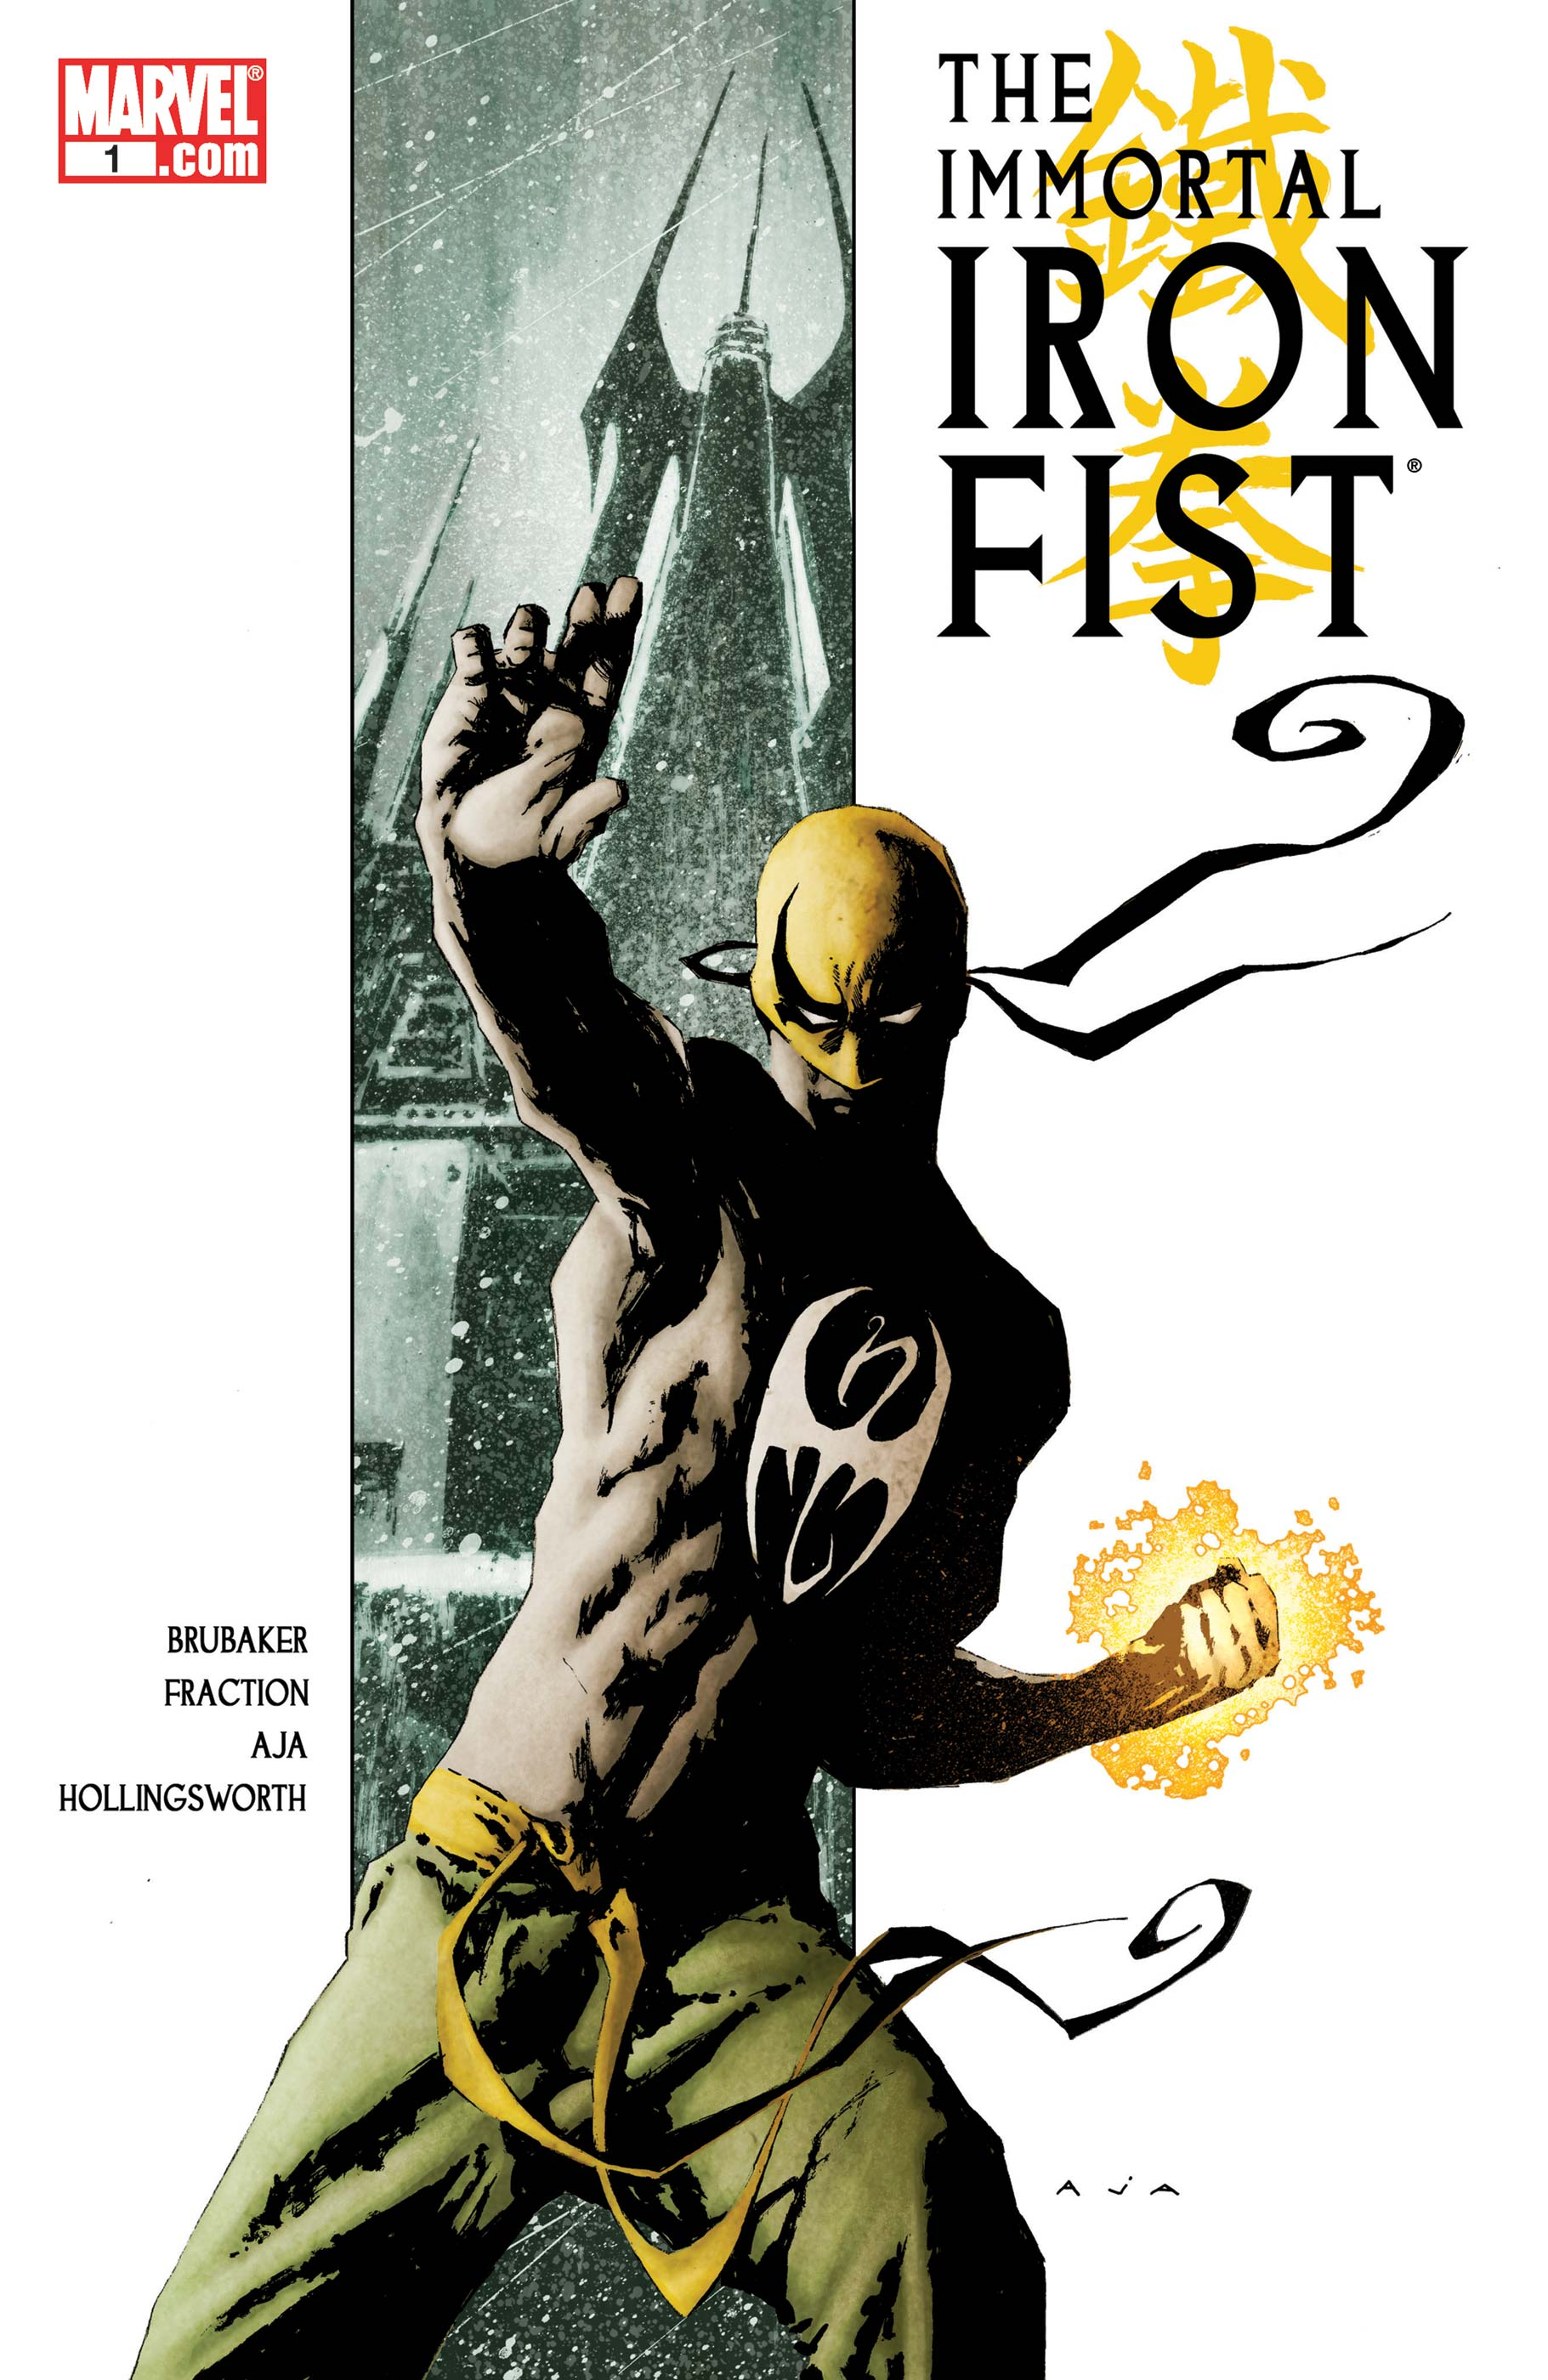 The Immortal Iron Fist (2006) #1